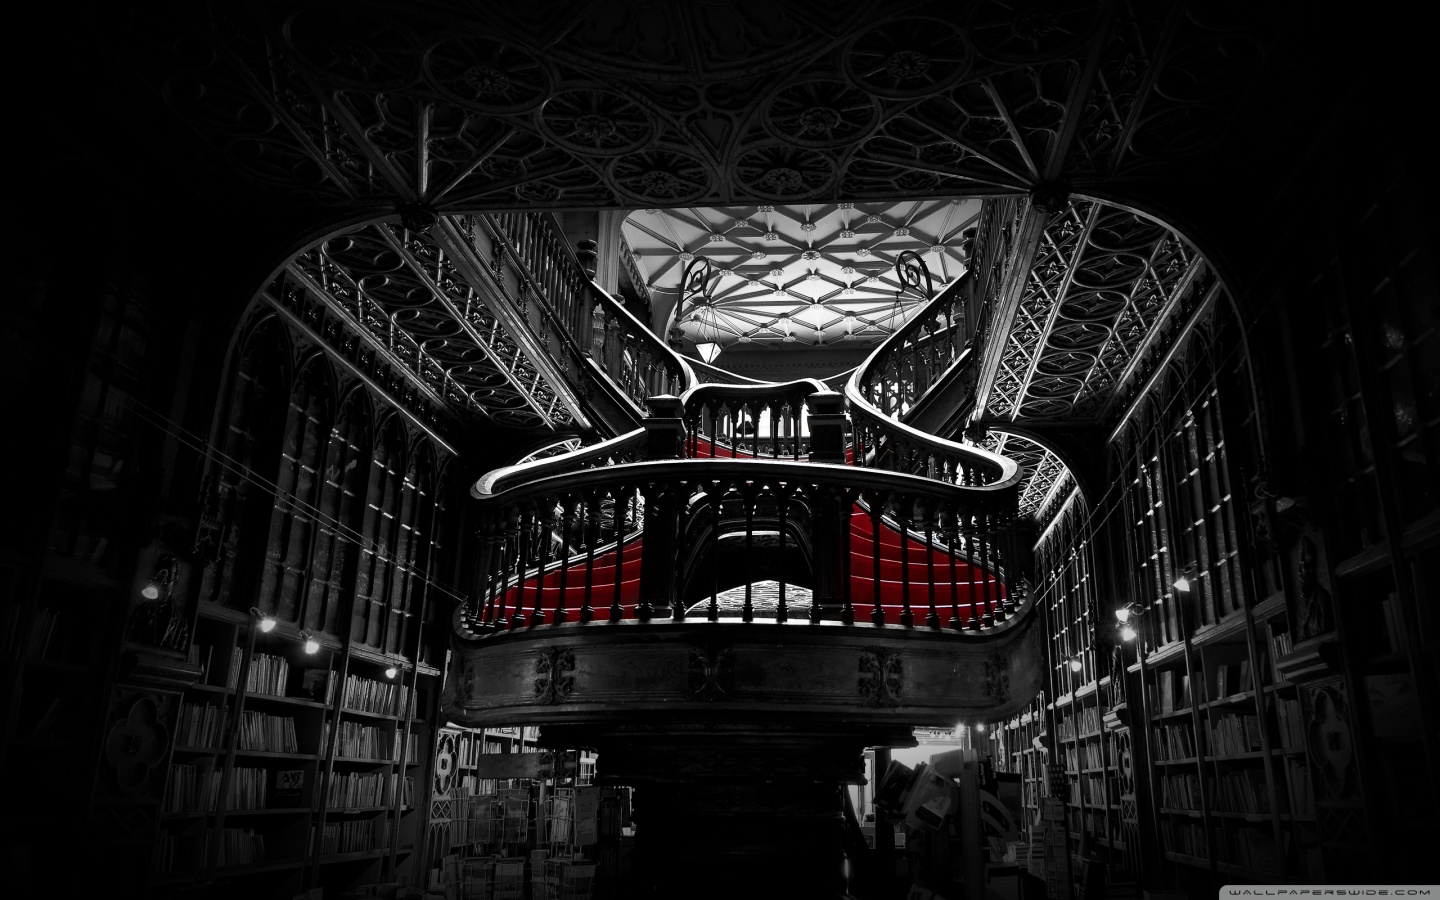 Bookshop in Portugal a wallpaper by Raul Lieberwirth Wallpapers 1440x900